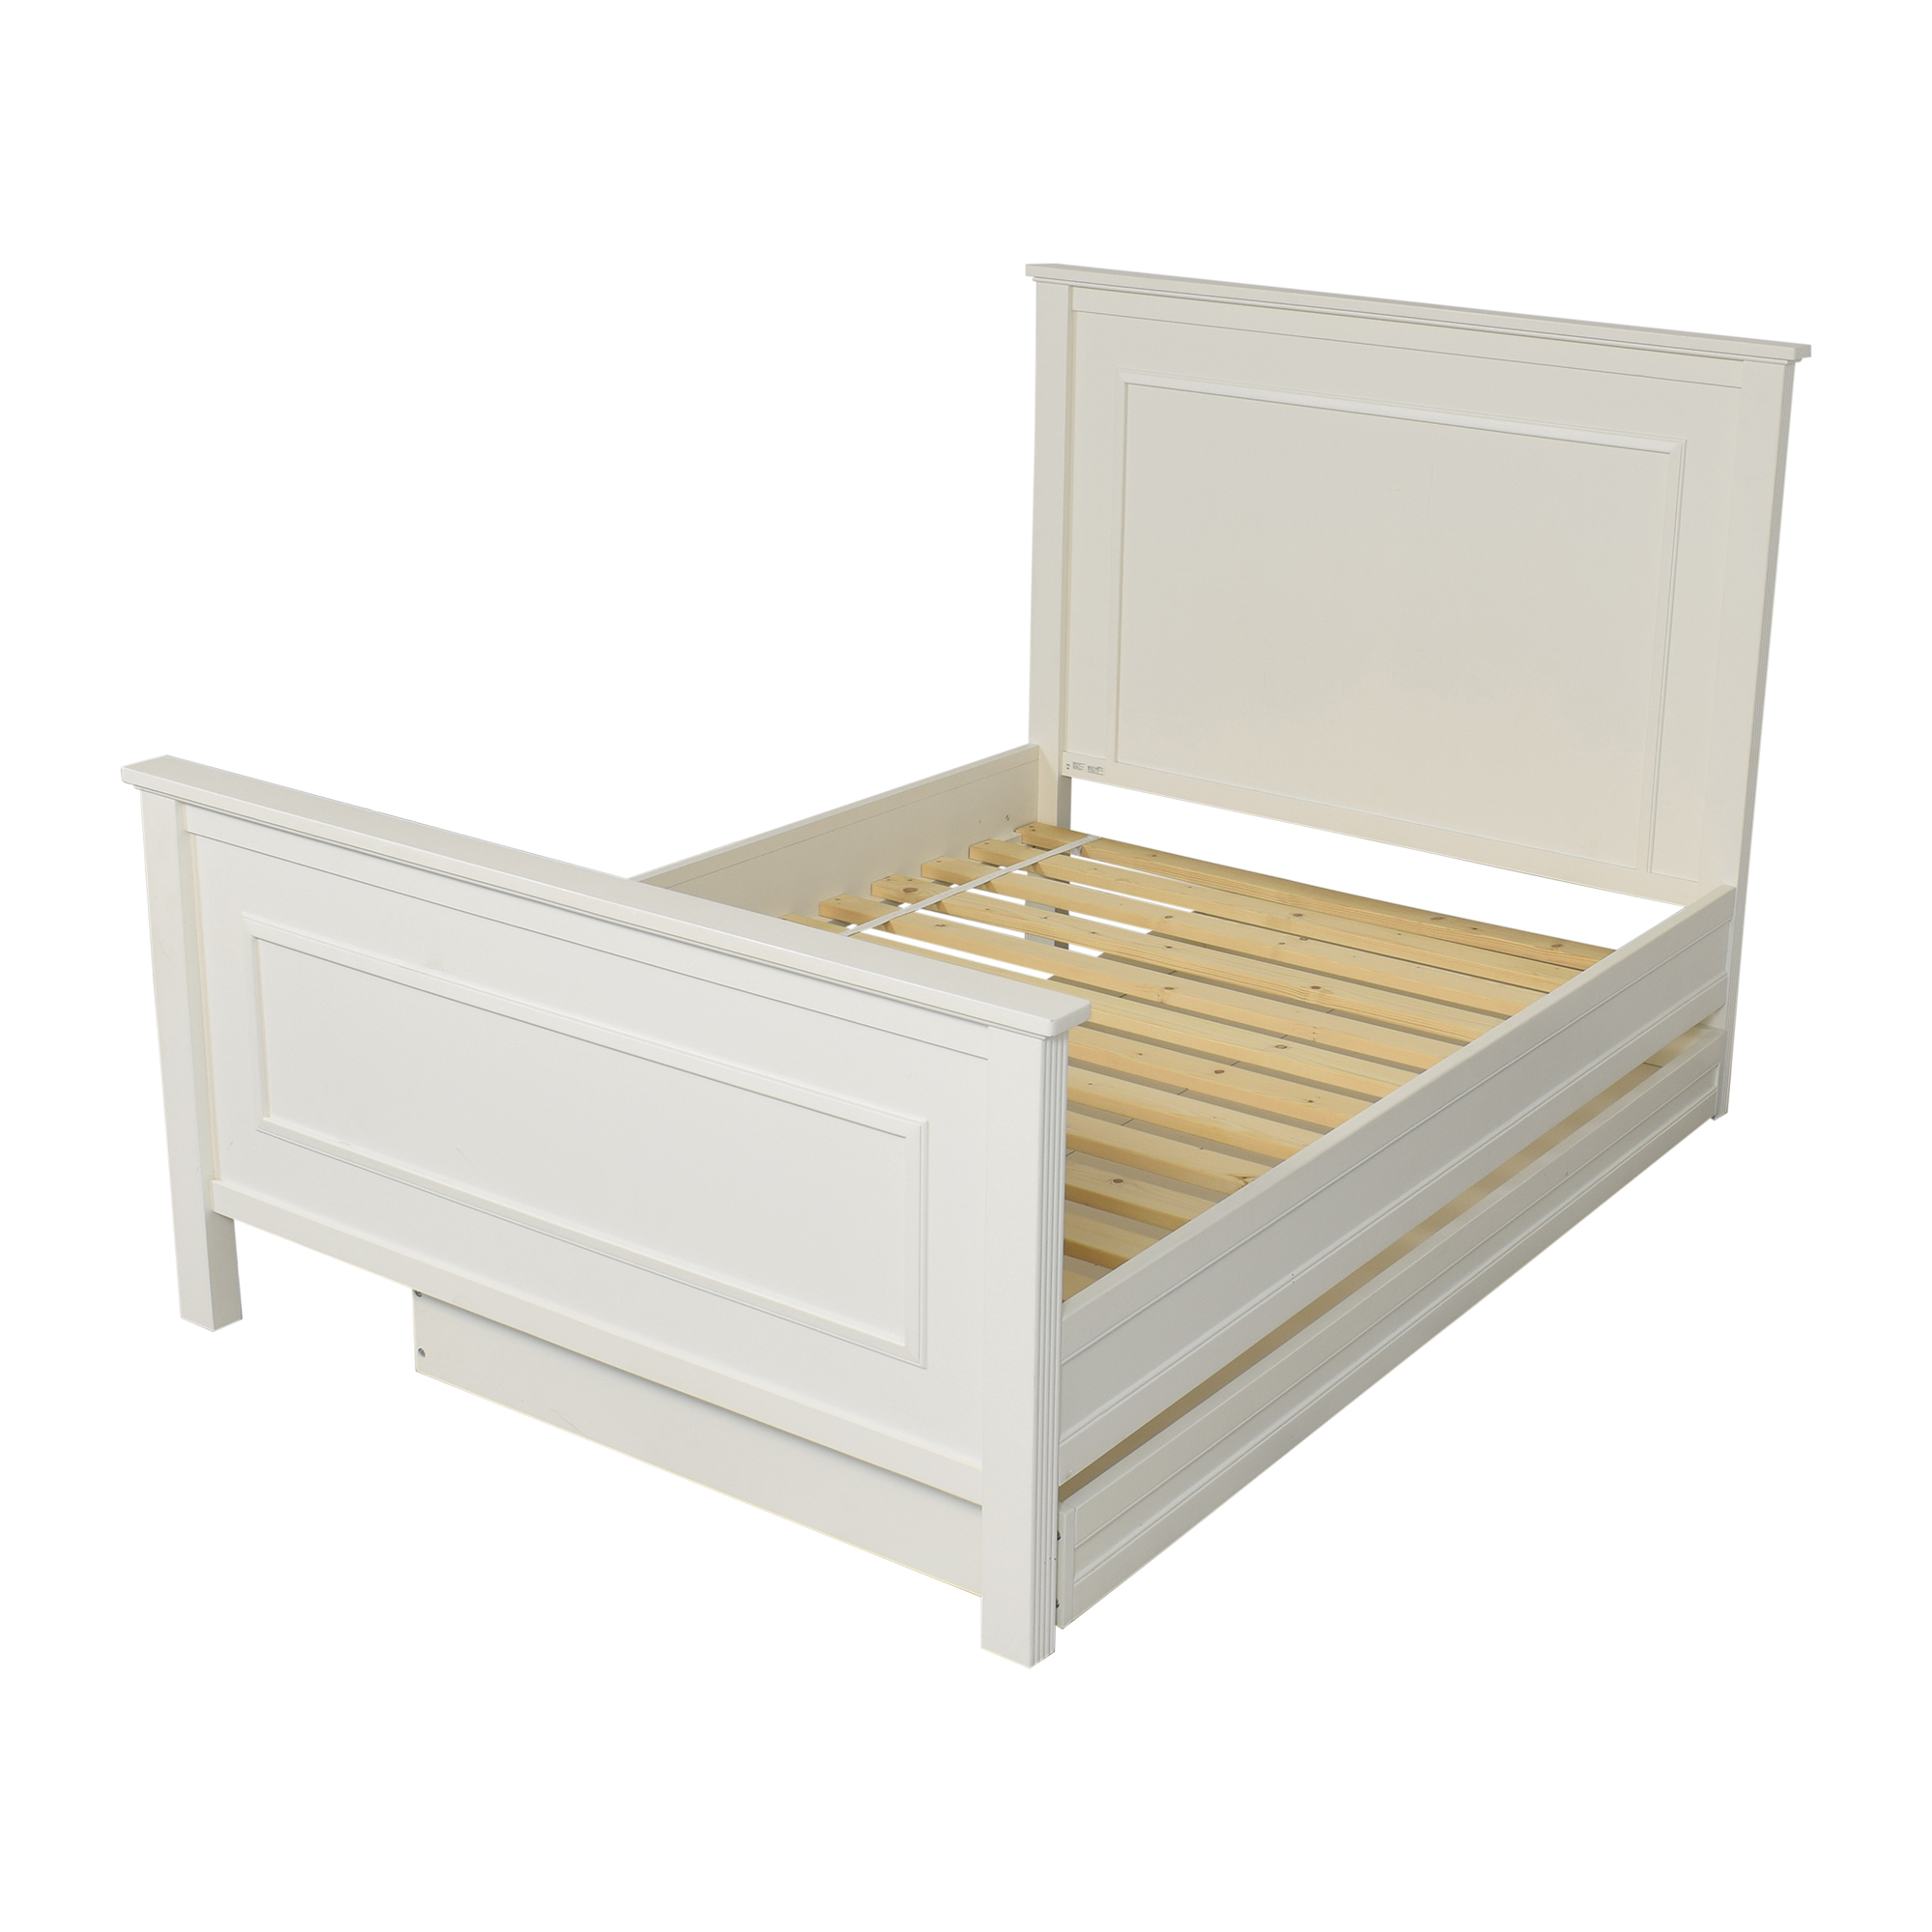 Pottery Barn Kids Pottery Barn Kids Fillmore Bed with Trundle